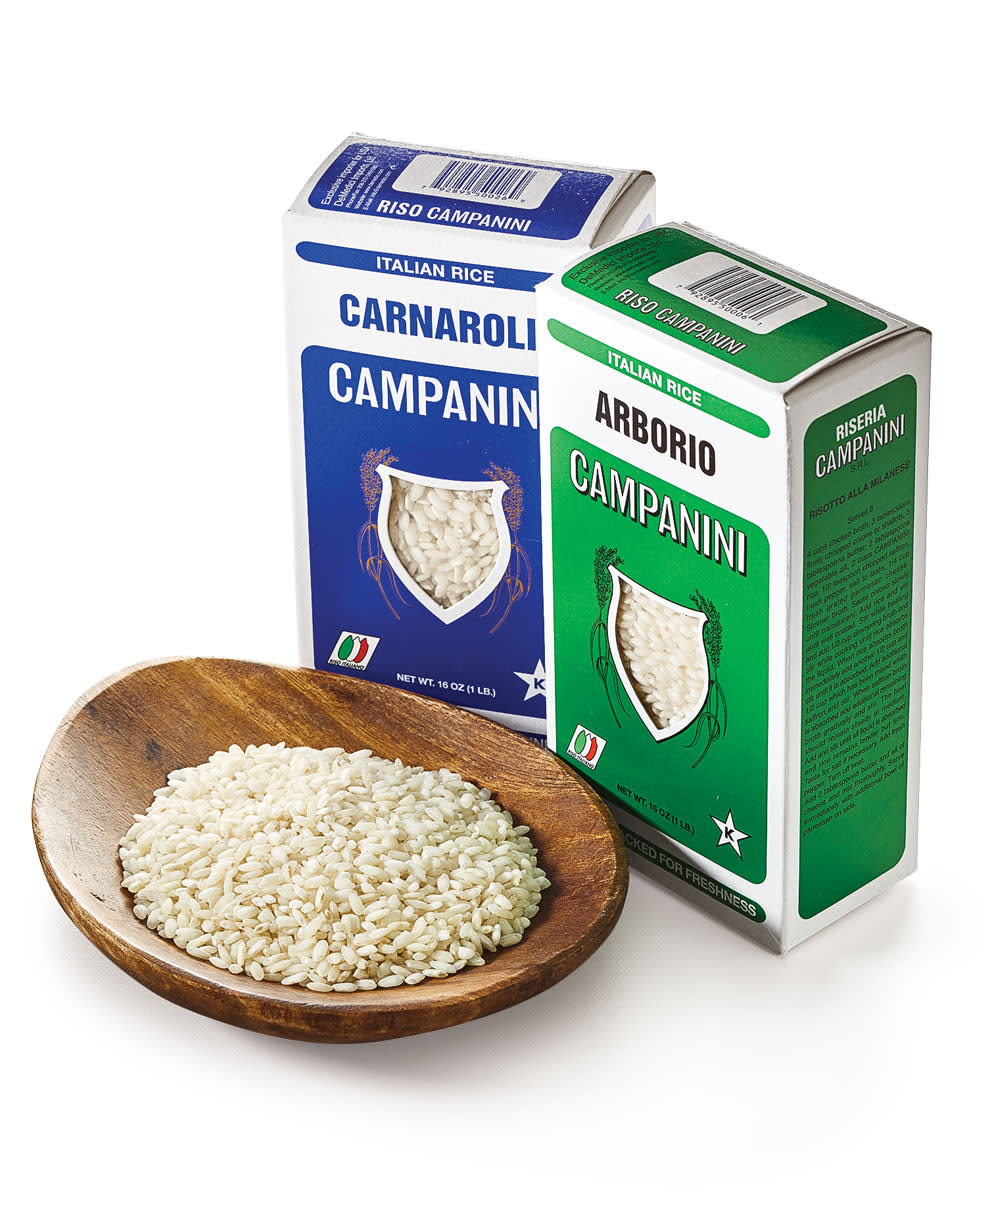 What type of rice is used for risotto? What's the difference between Arborio and Carnaroli rice?